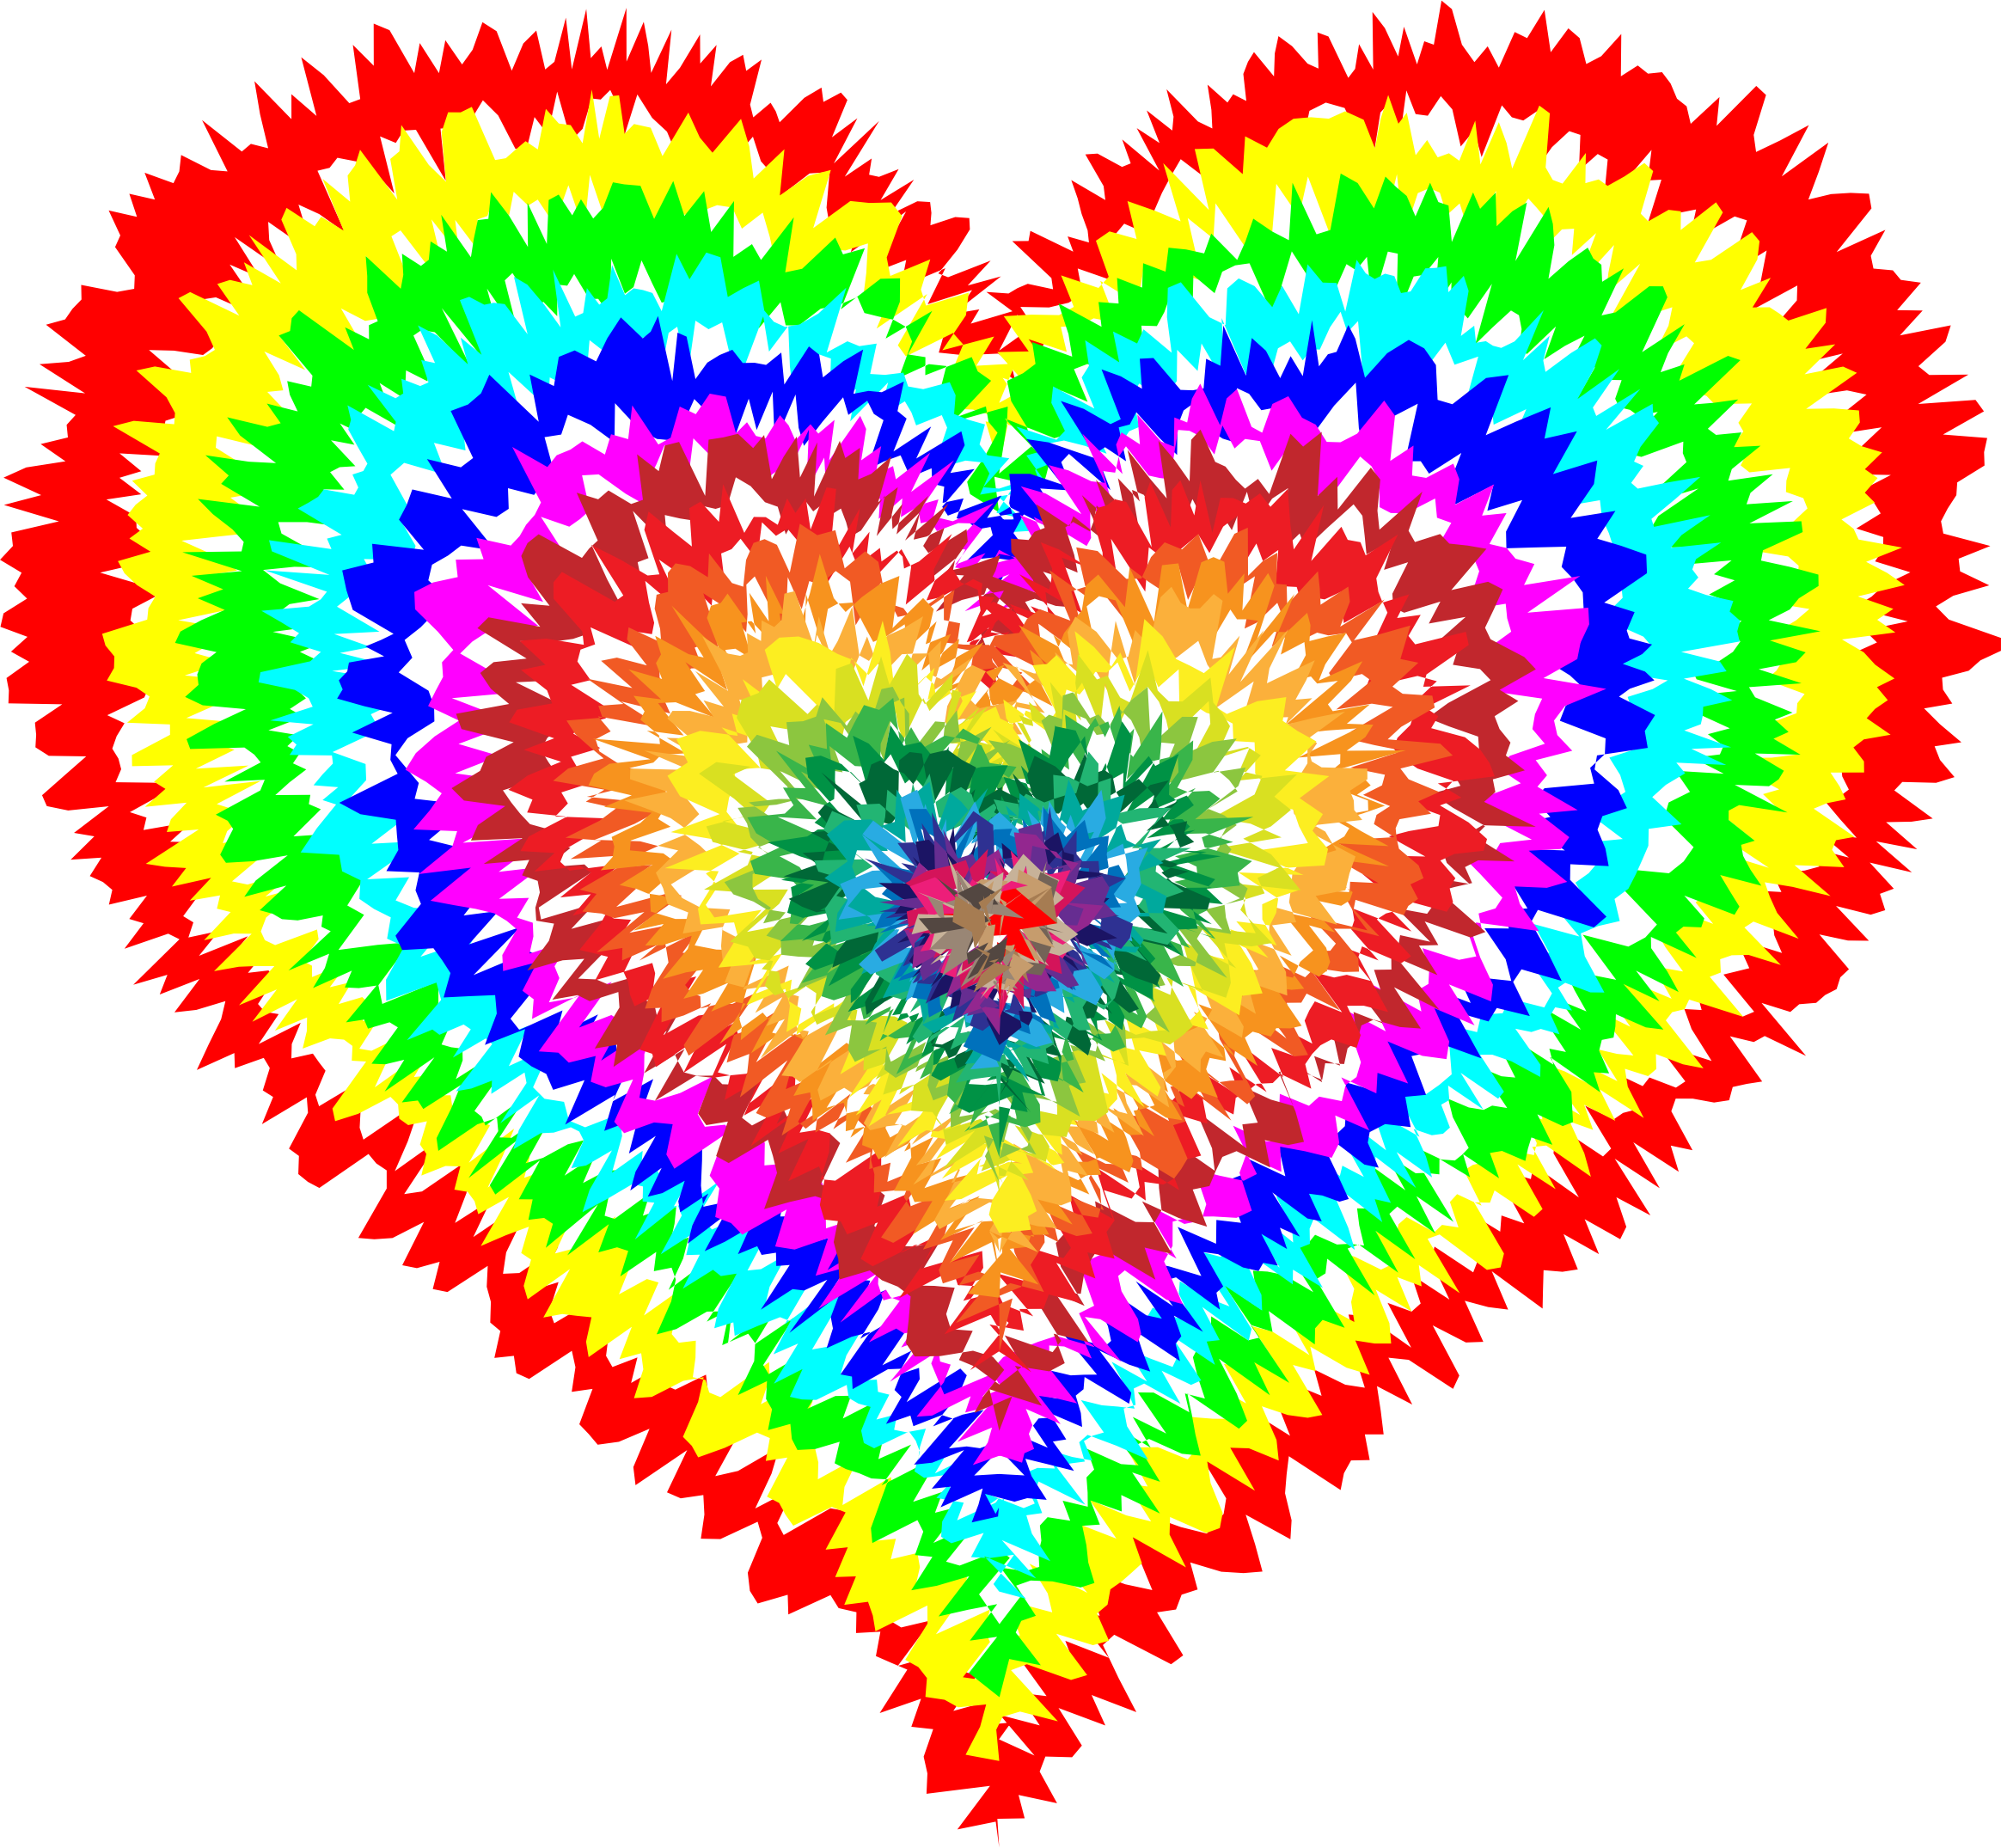 Circle clipart tie dye. Heart look at all